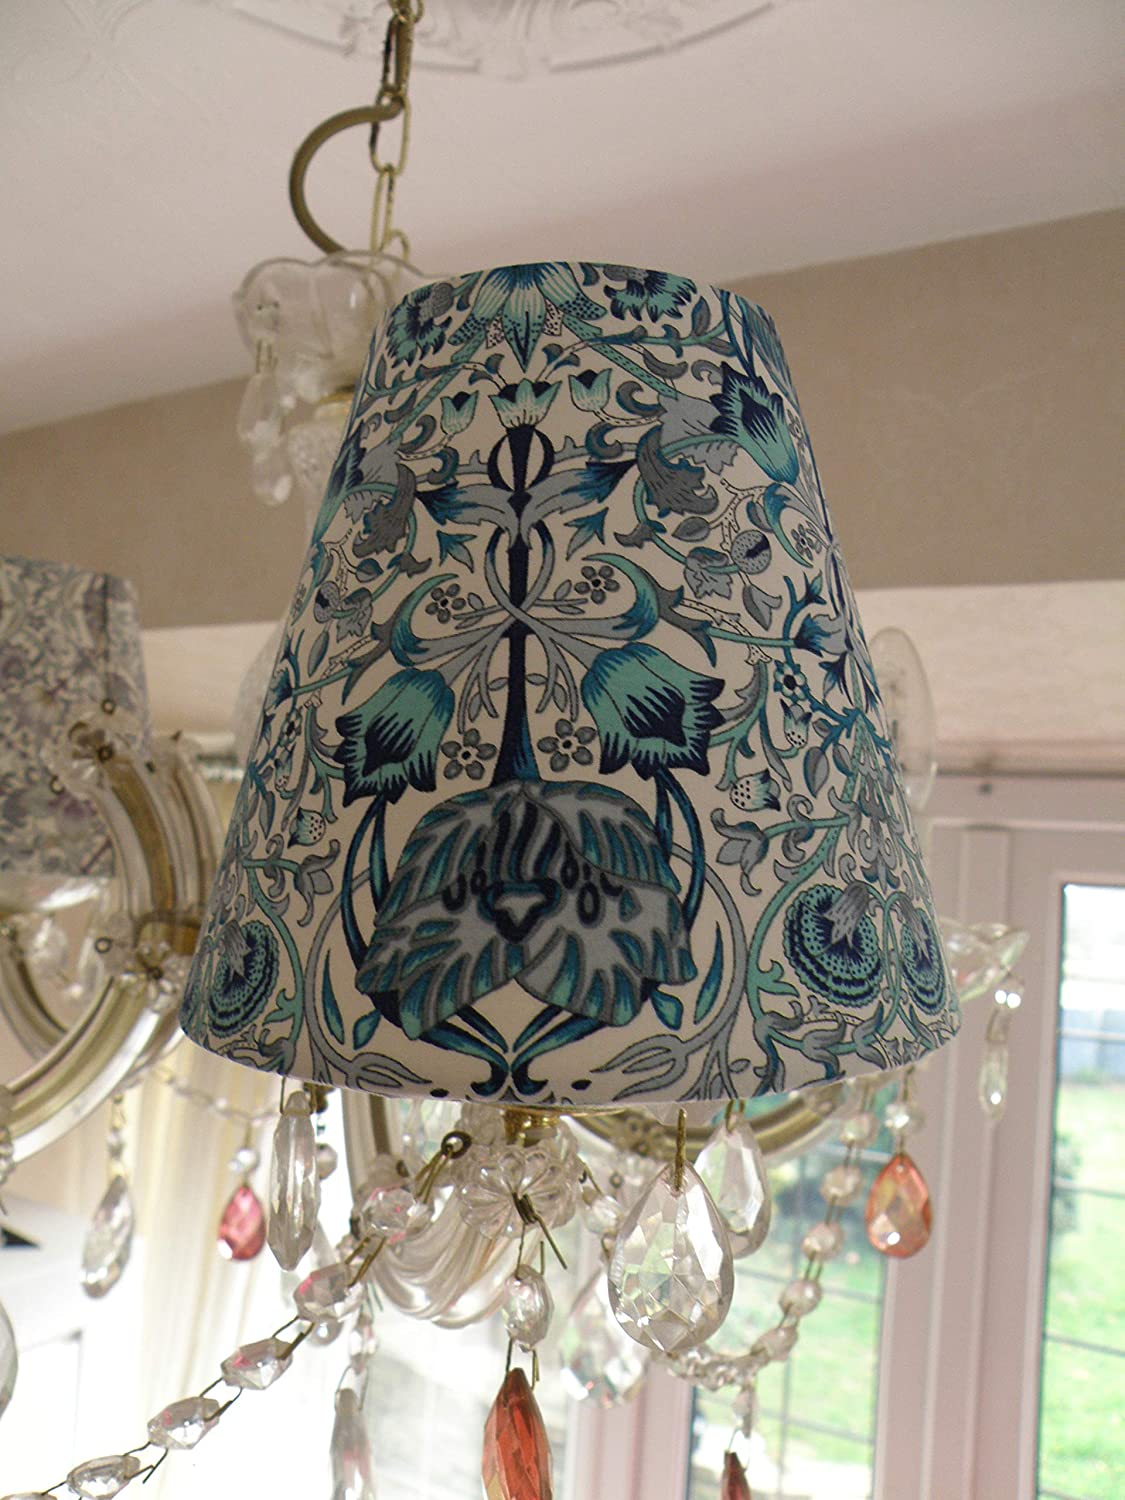 Bespoke Candle Clip Lampshade in Art Deco Blue Pima Cotton Lawn John Lewis Fabric